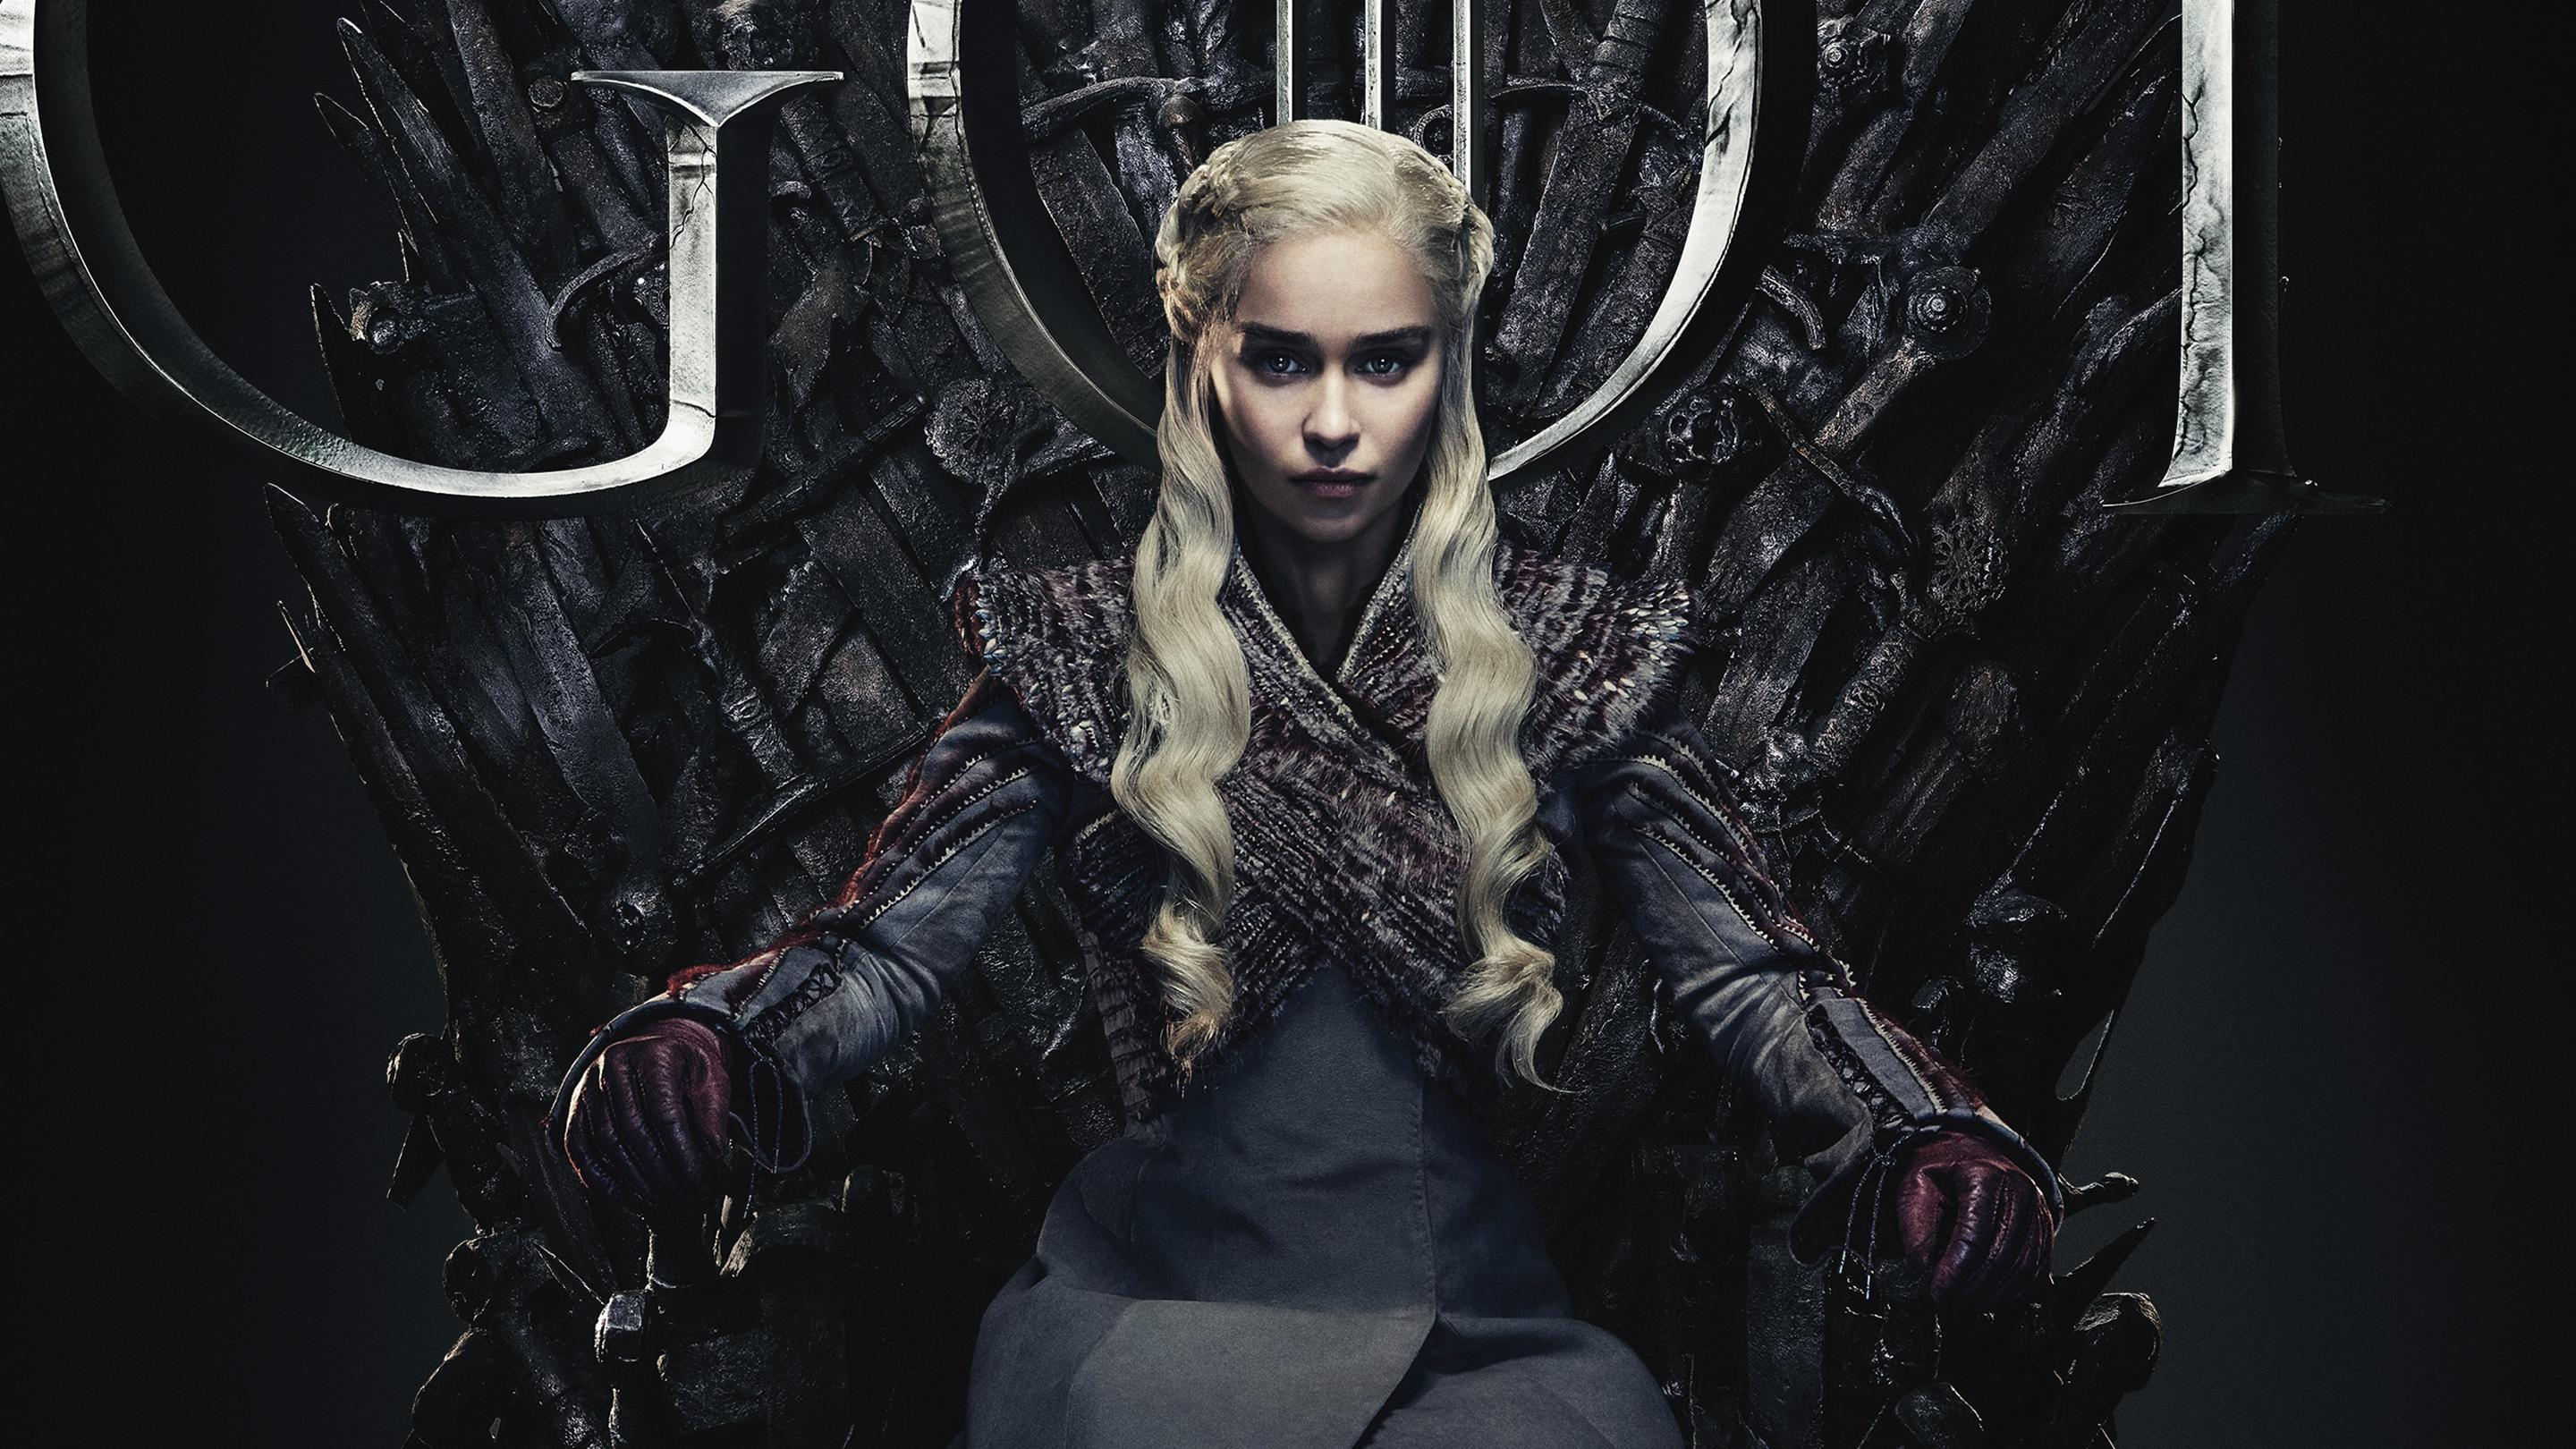 Emilia Clarke in Game of Thrones Final Season 8 2019 Wallpapers